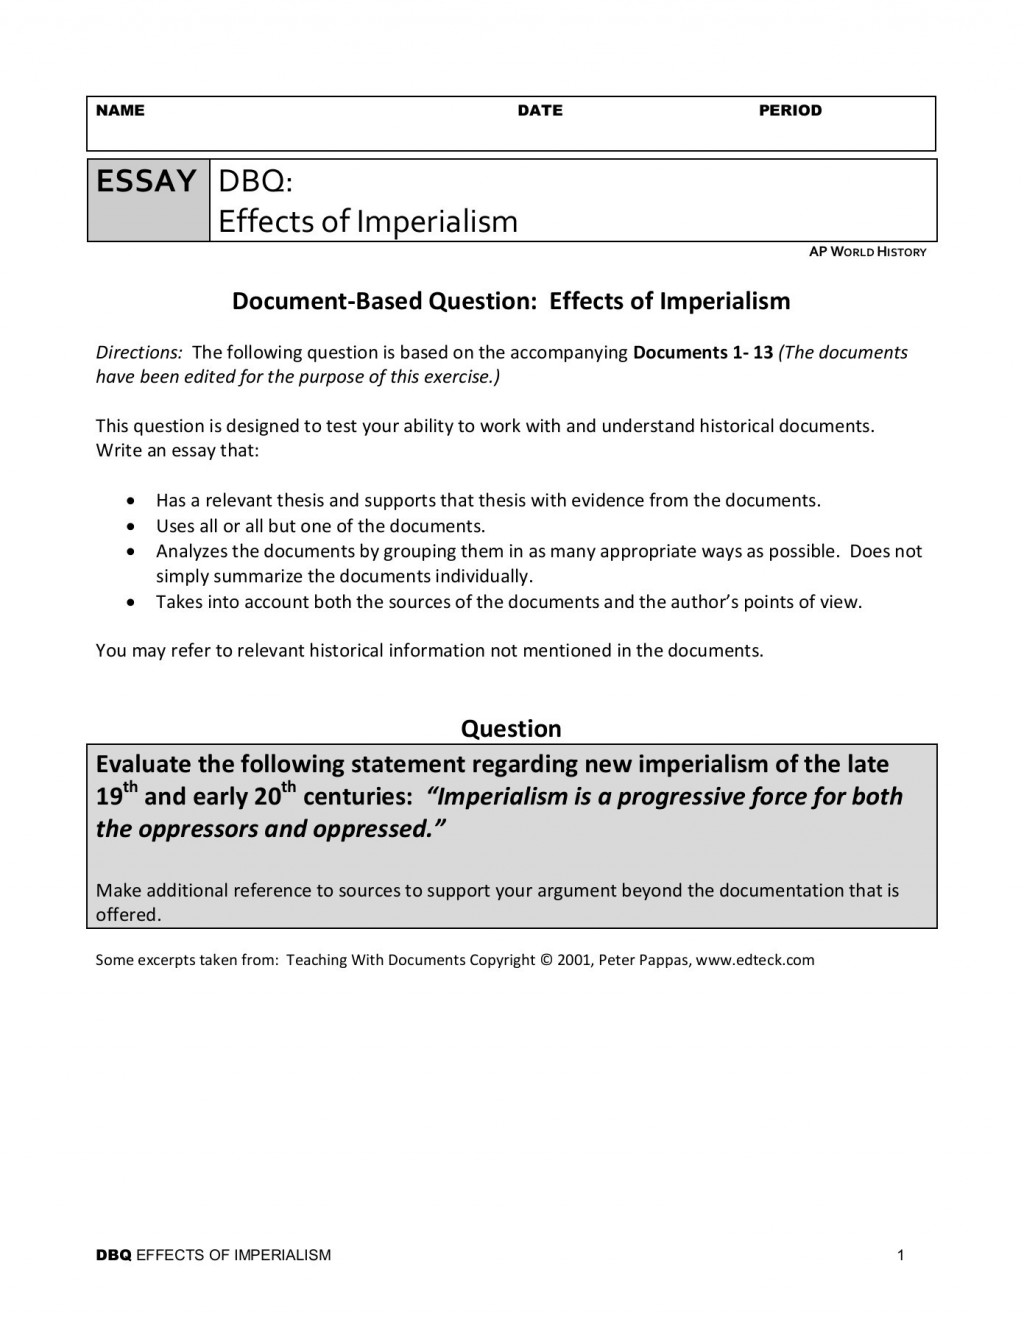 005 Imperialism Essay Example Awful Hook Topics Thesis Statement Large